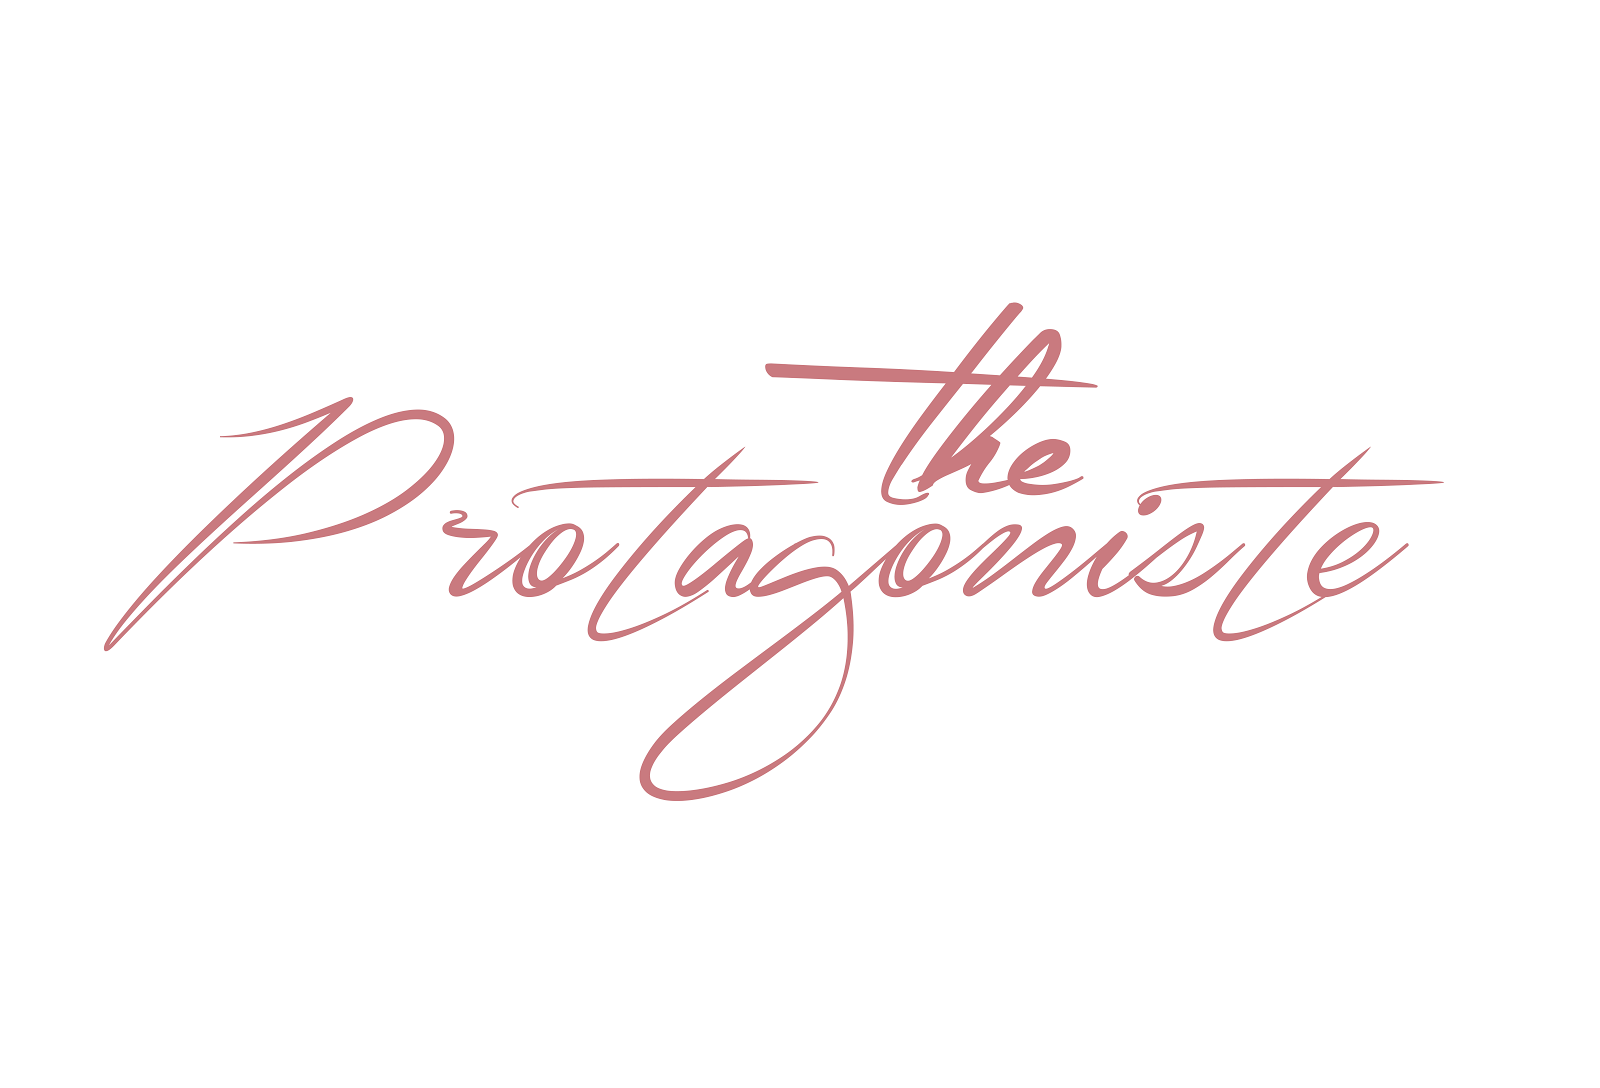 THE PROTAGONISTE